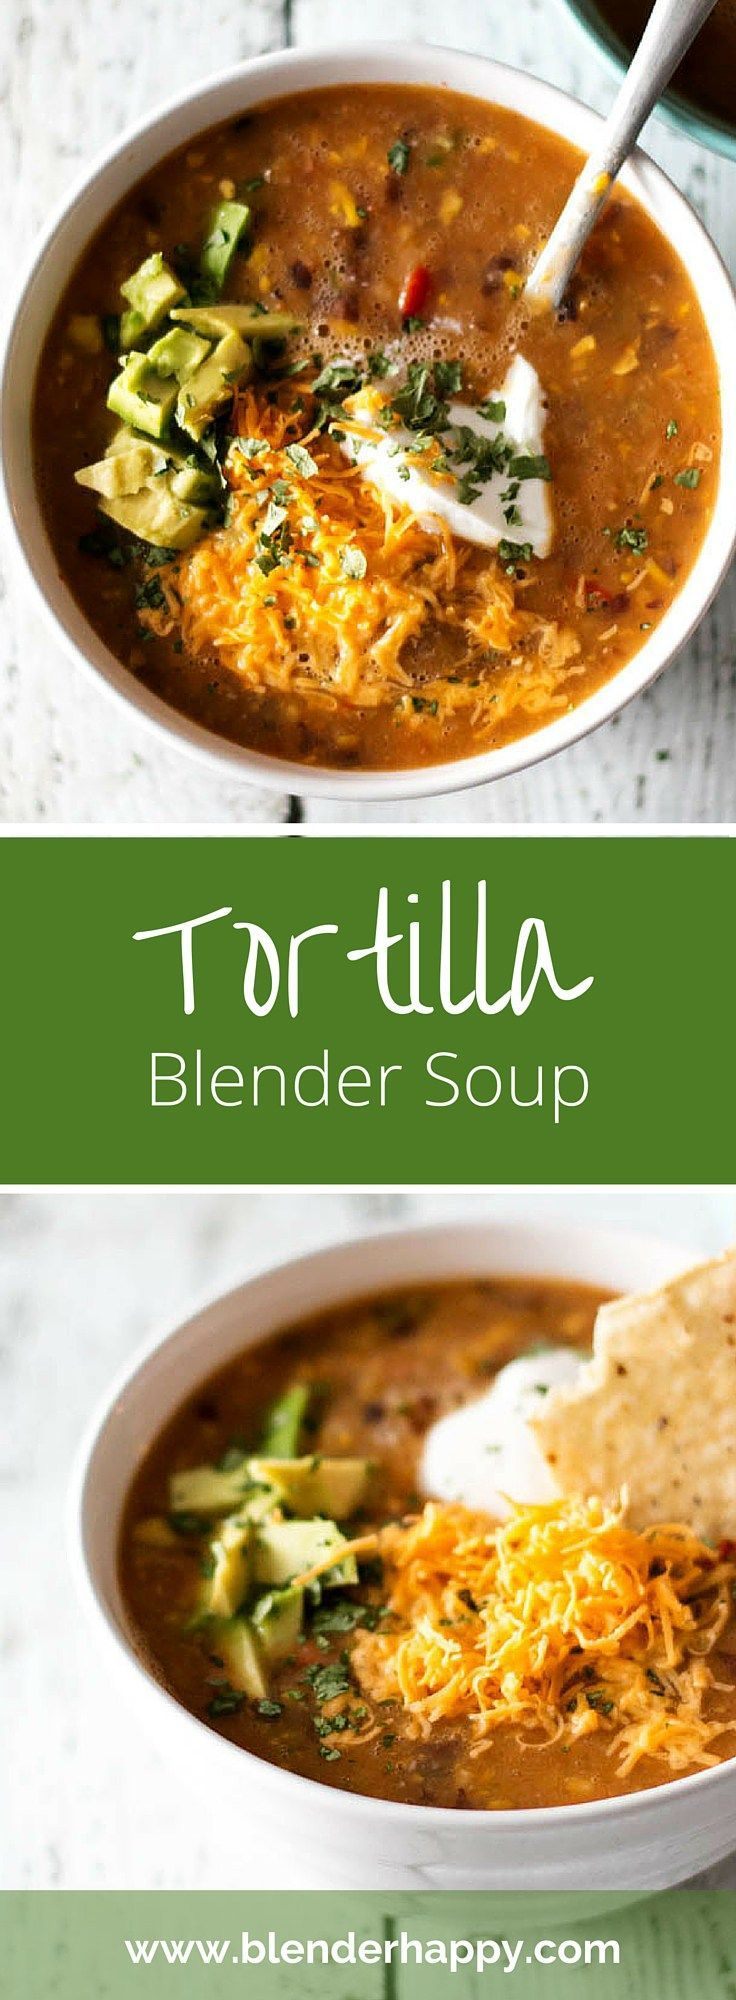 Tortilla blender soup made fresh in under ten minutes. Top it off with all of your favourite ingredients. Swap out the cheese and sour cream for a vegan option.